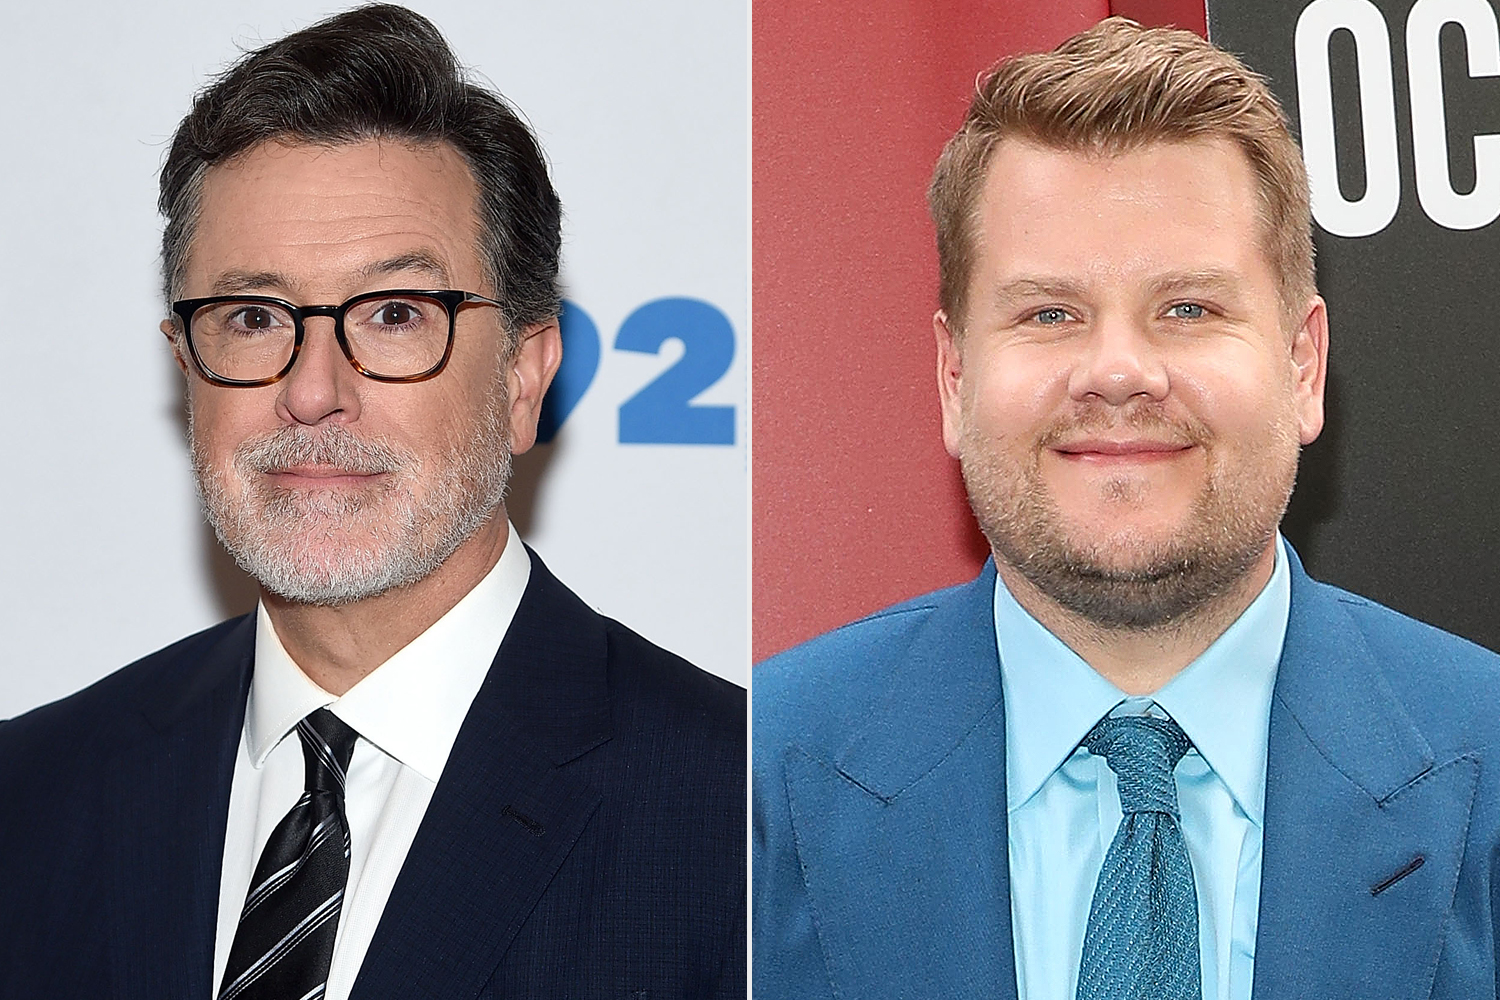 Stephen Colbert, James Corden